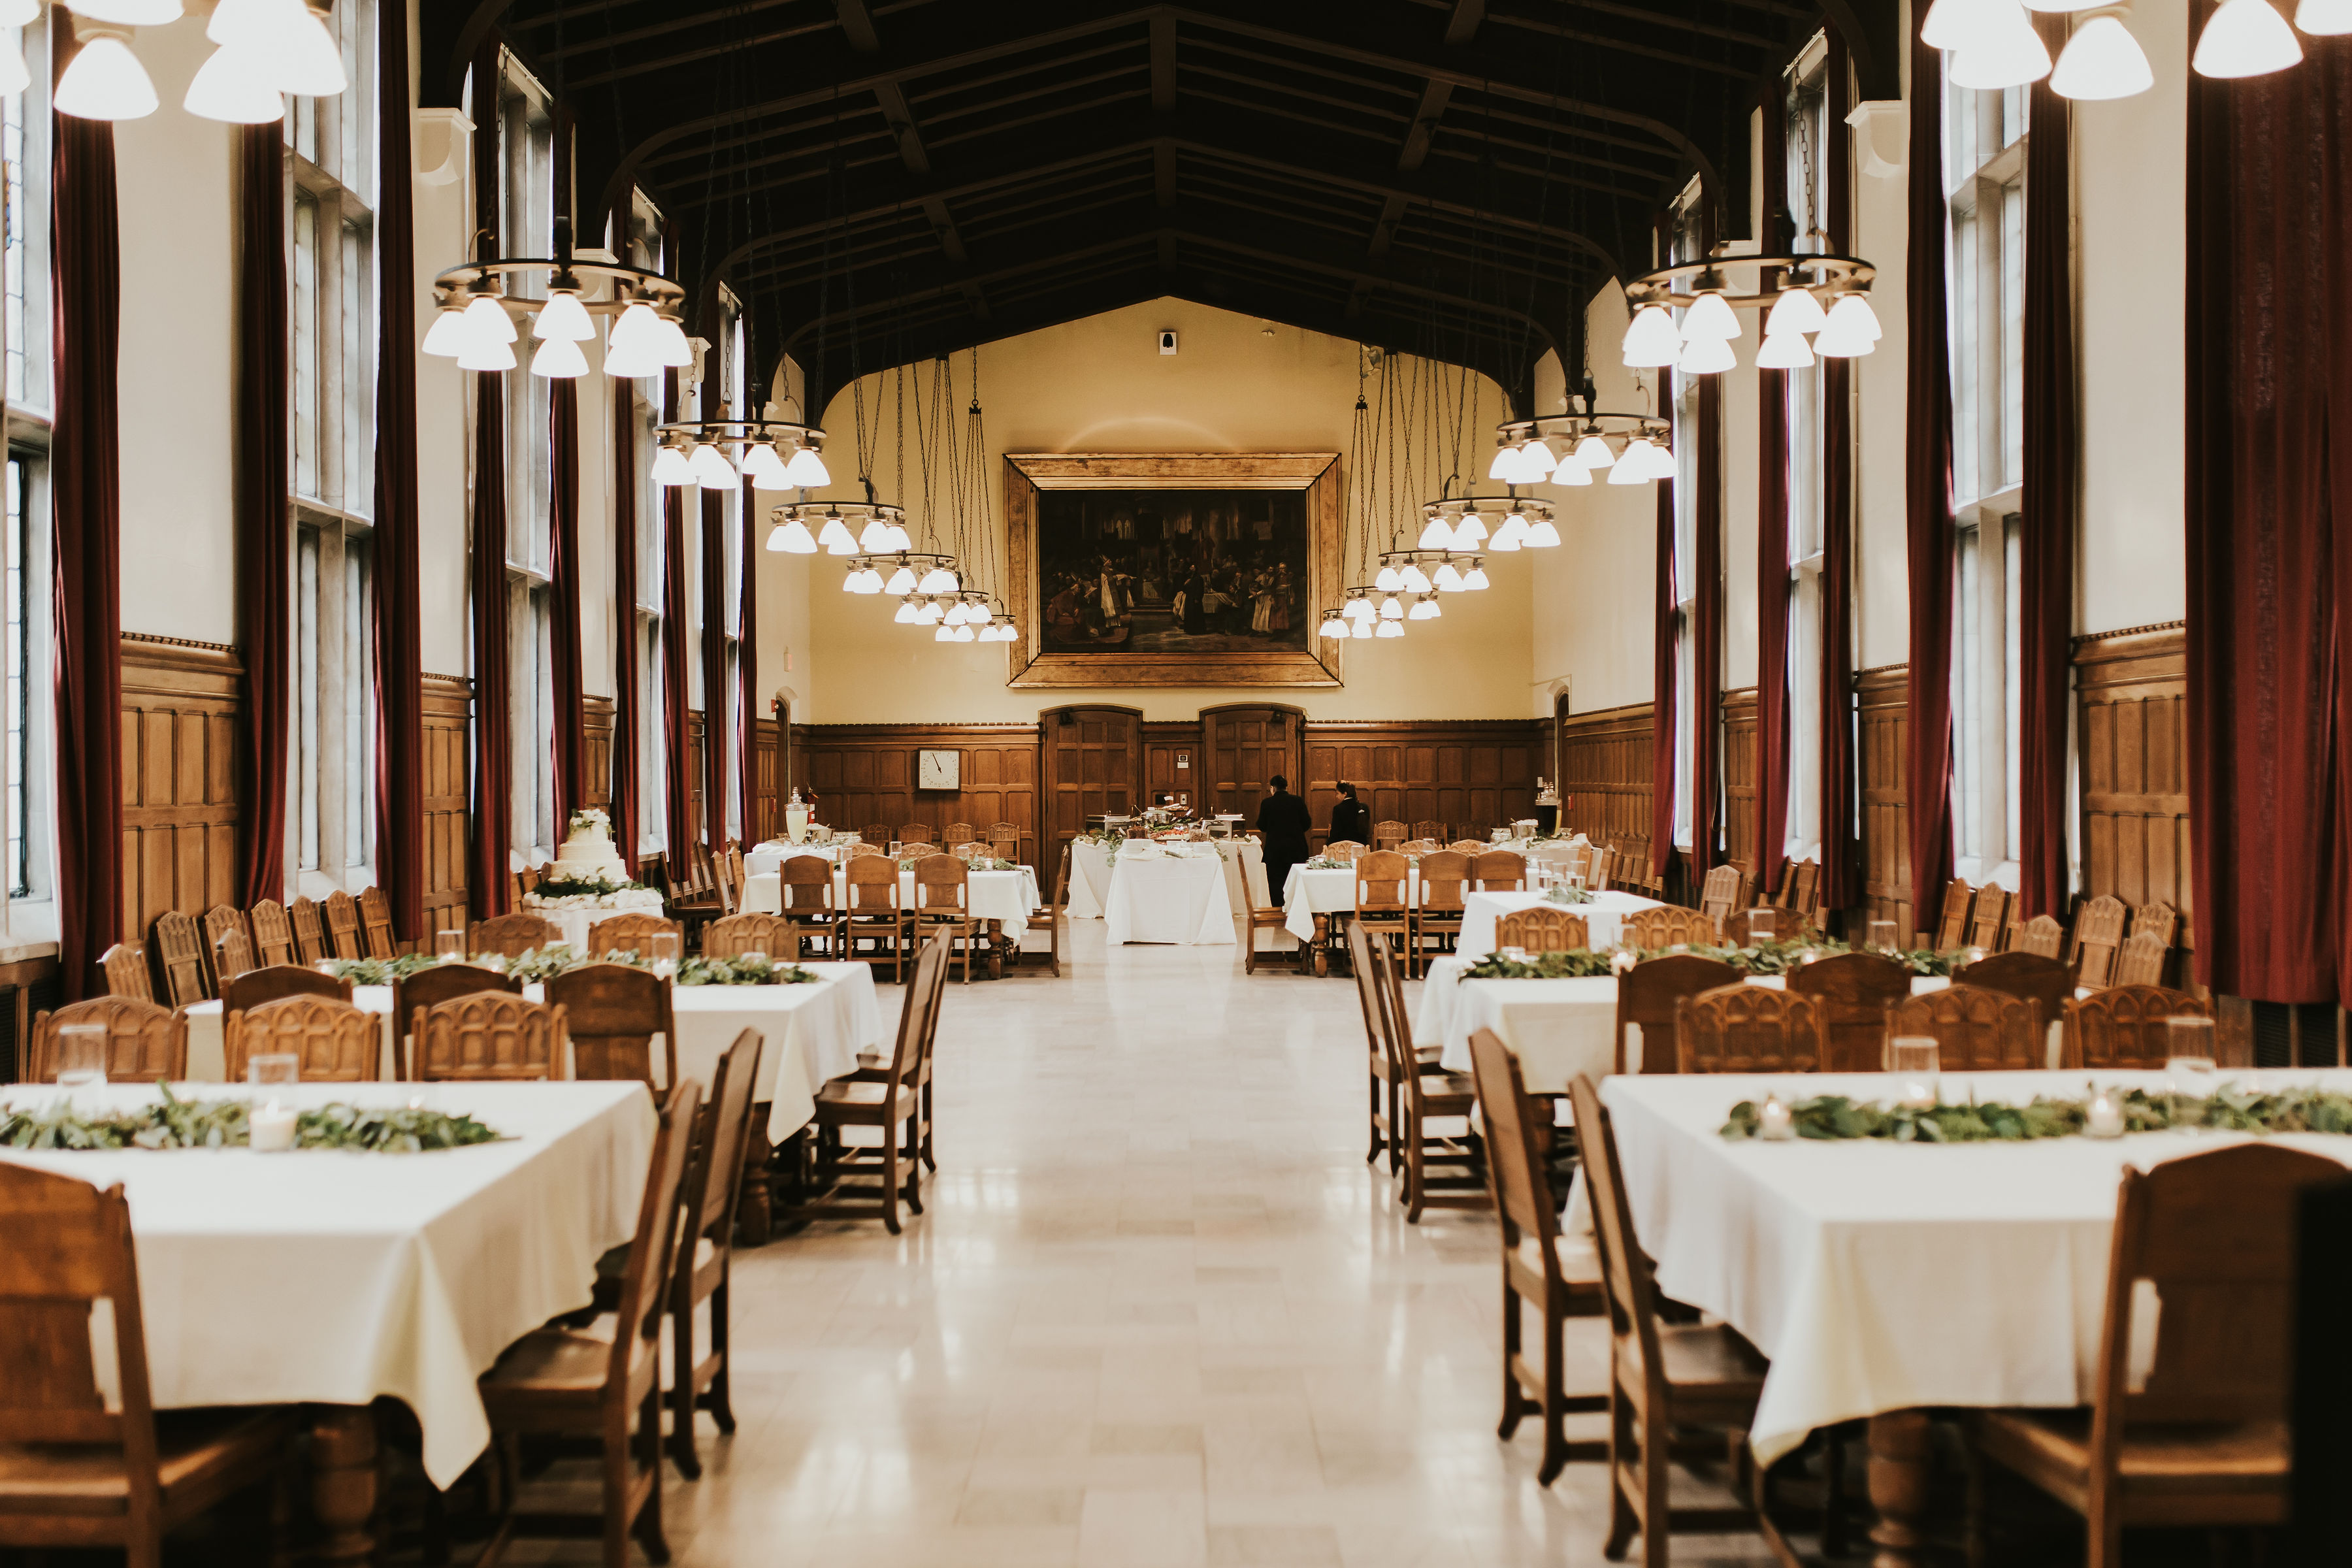 decorating dining hall with banquet tables and flowers